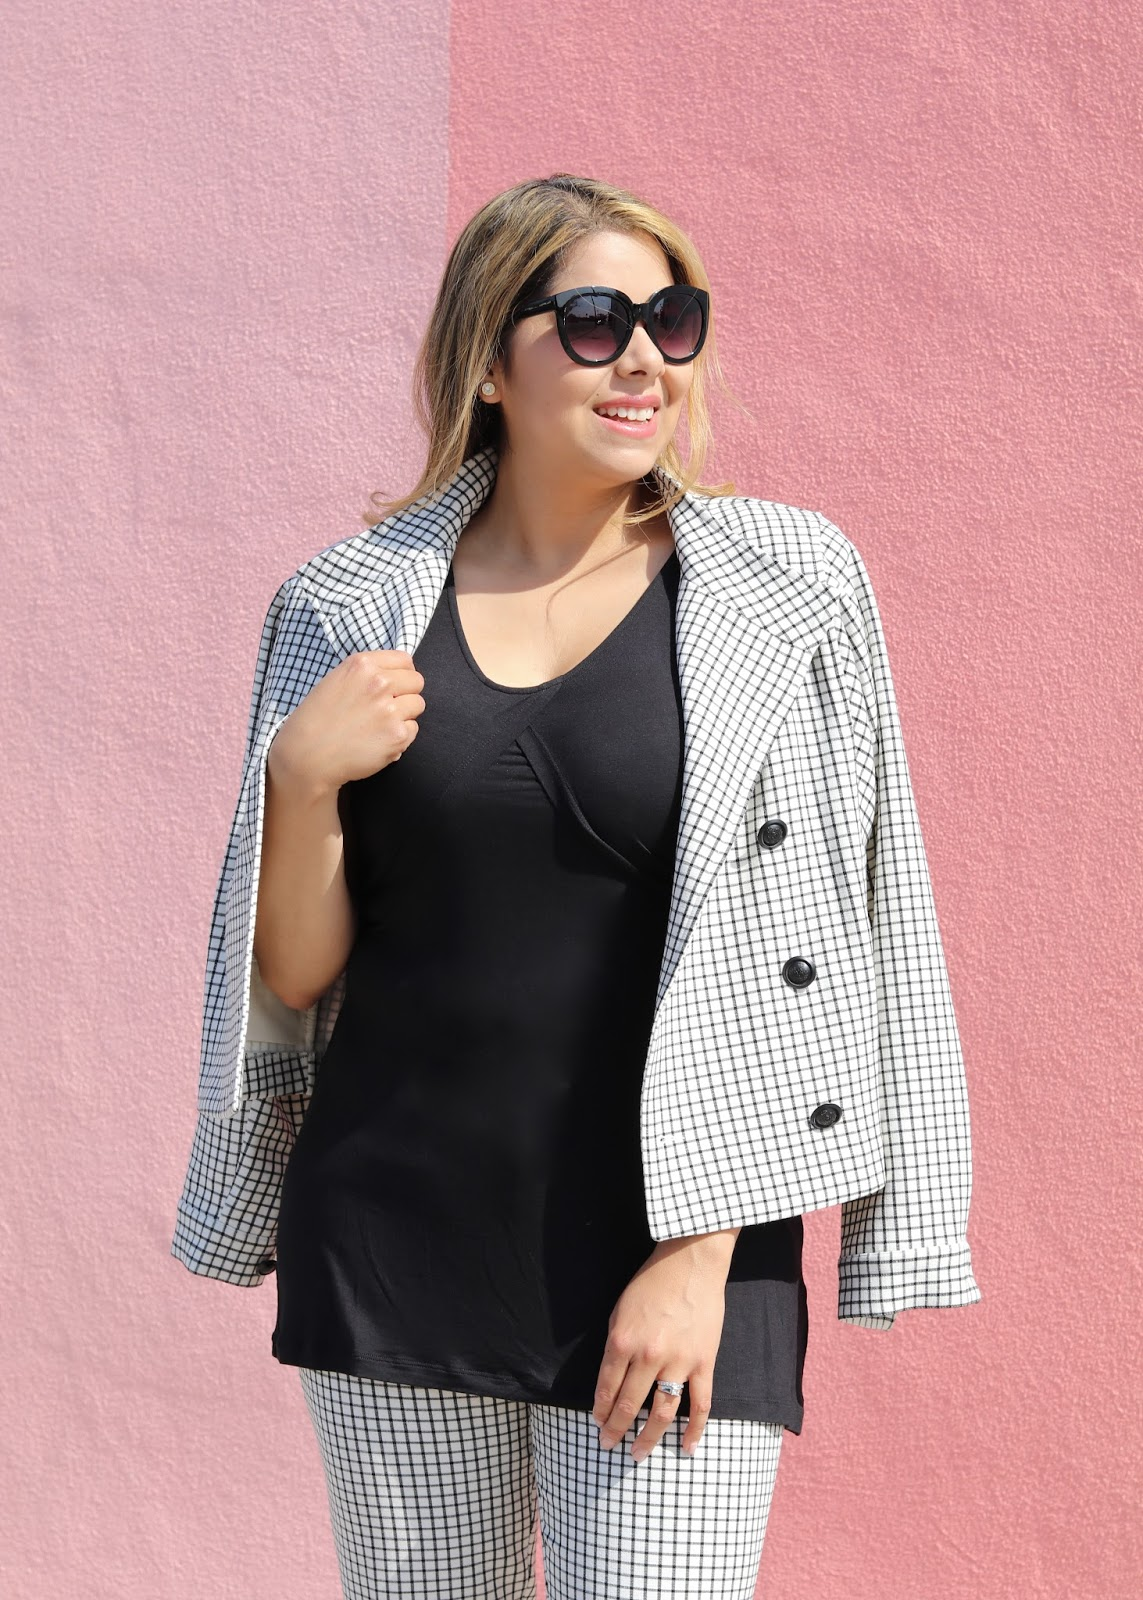 Fall 2016 fashion, latina fashion blogger, windowpane blazer, colorful suits for women, black and white outfit